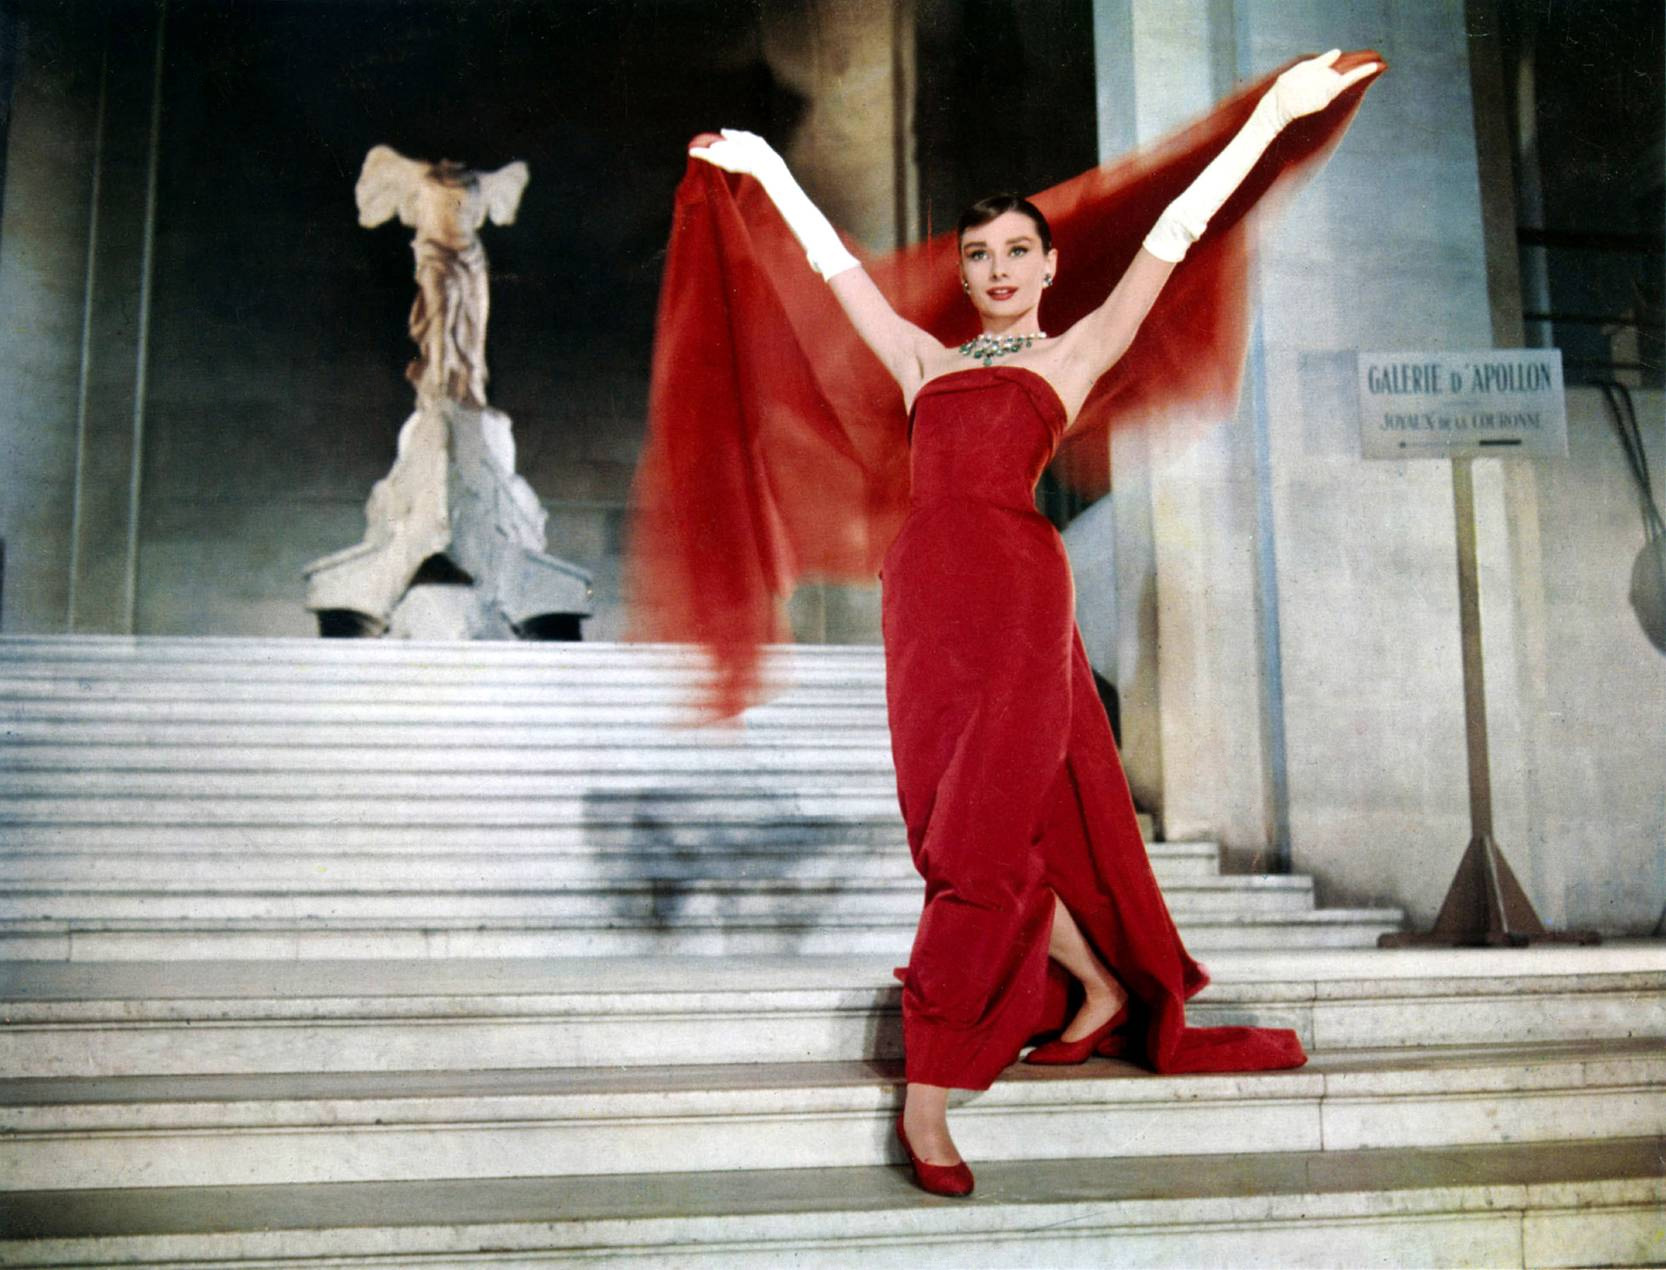 Audrey Hepburn walking down the stairs for a photo shoot in Funny Face